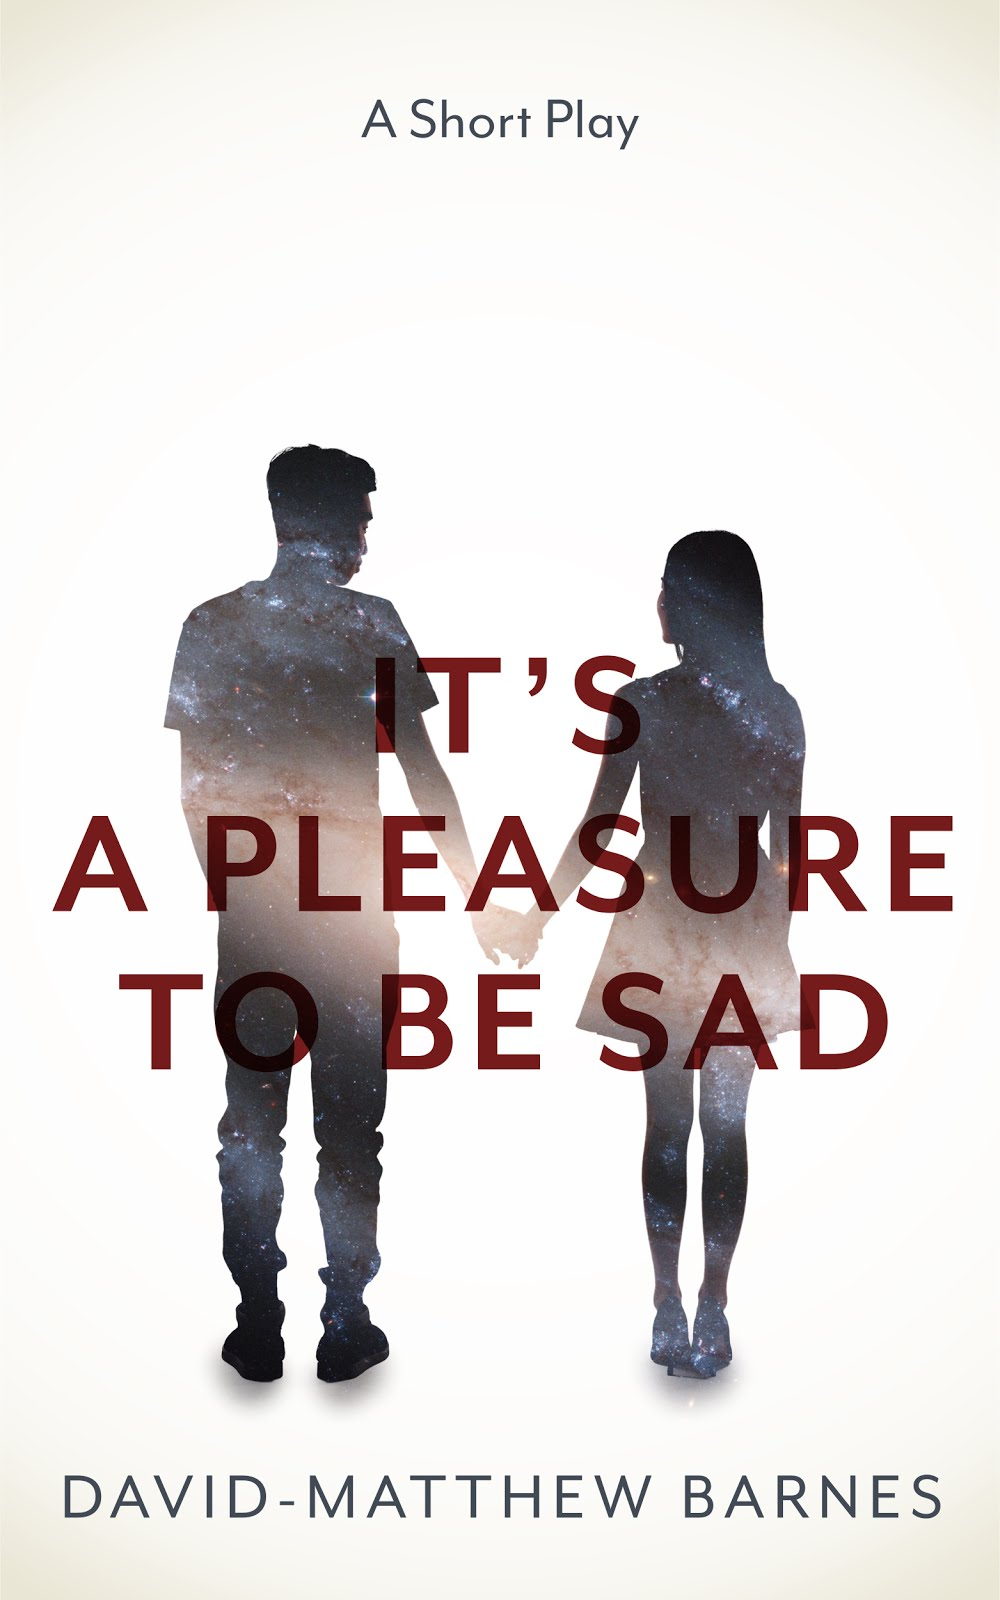 IT'S A PLEASURE TO BE SAD